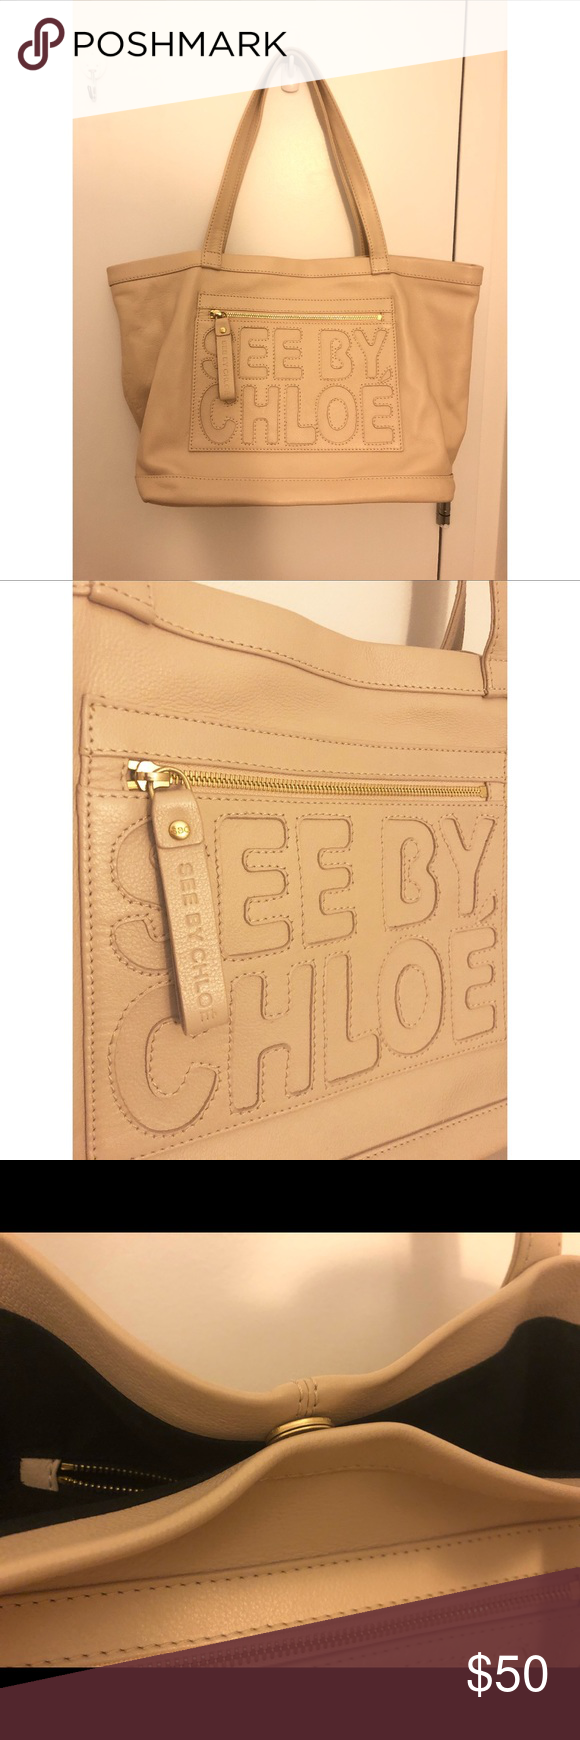 See By Chloe tote bag ivory See by Chloe tote bag  Only use less than three times Just as new See By Chloe Bags Totes #seebychloe